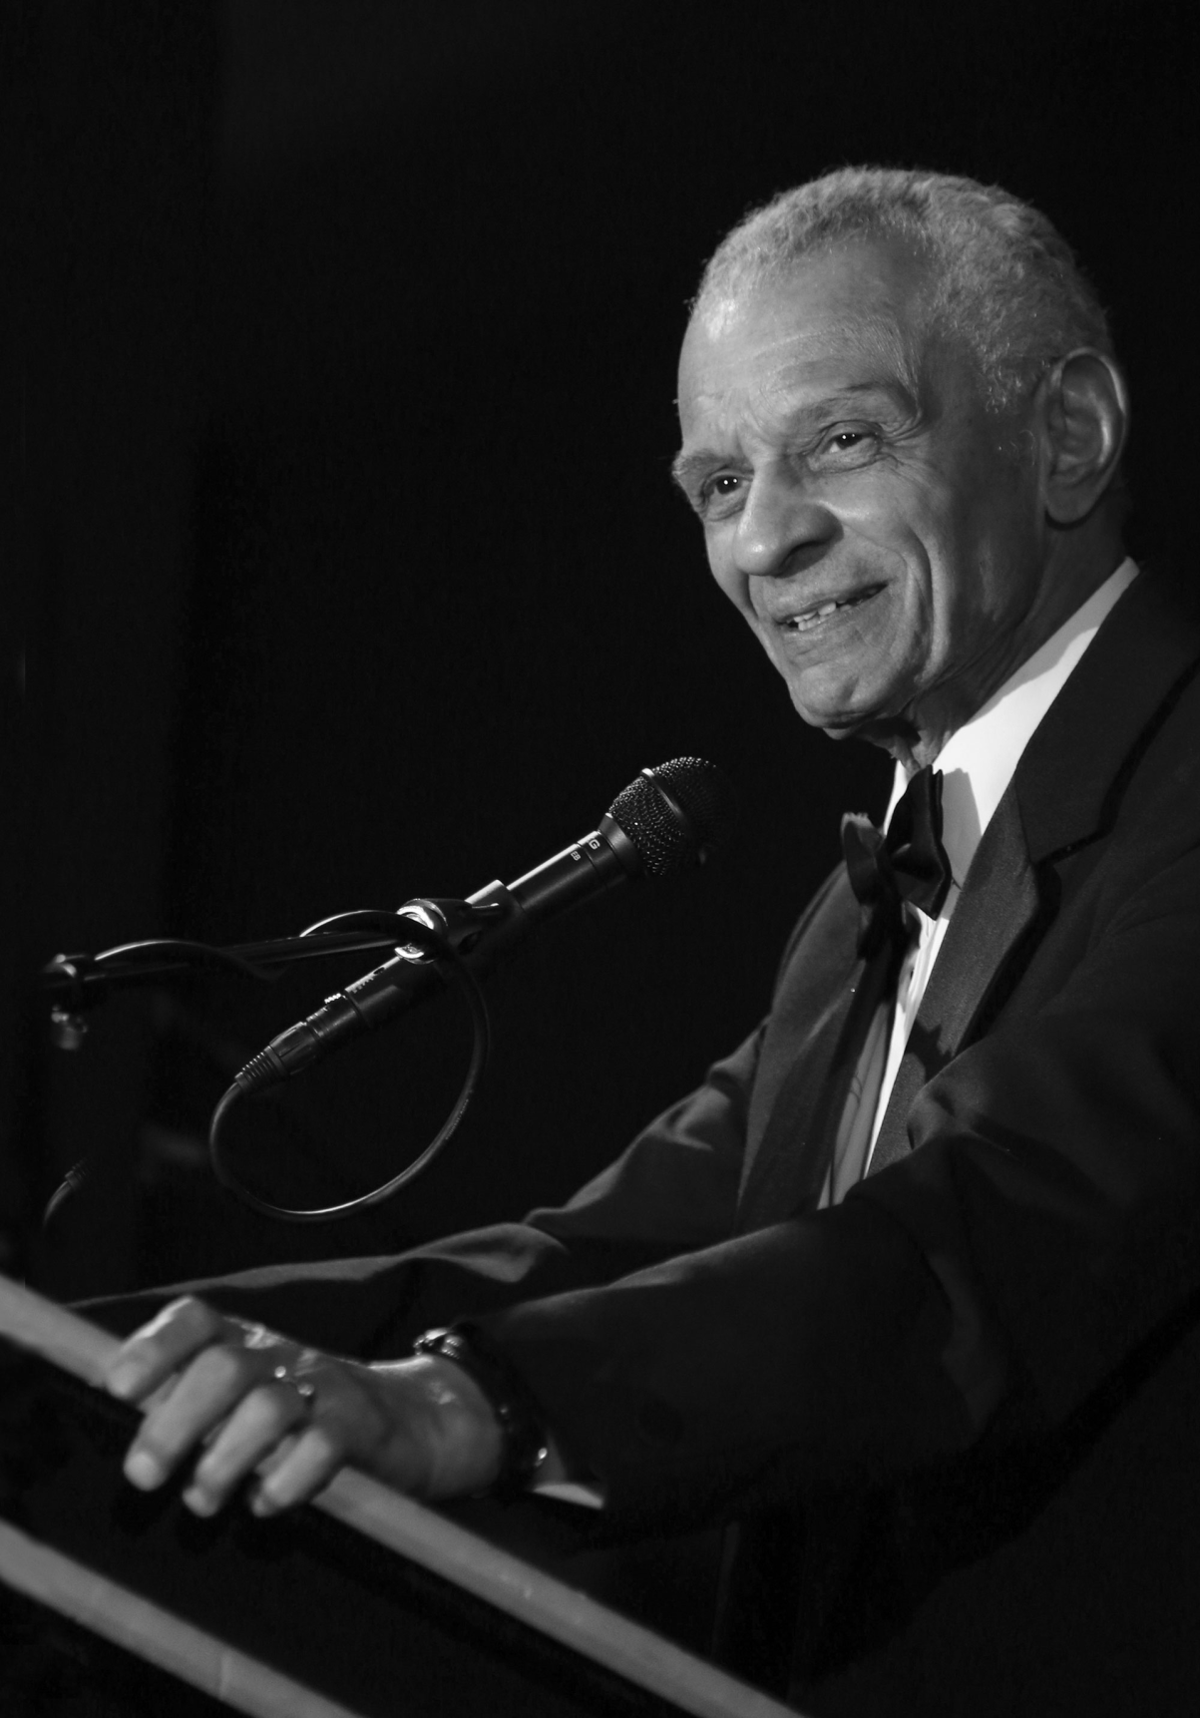 C.T. Vivian Recounts a Life Devoted to Justice and Nonviolence